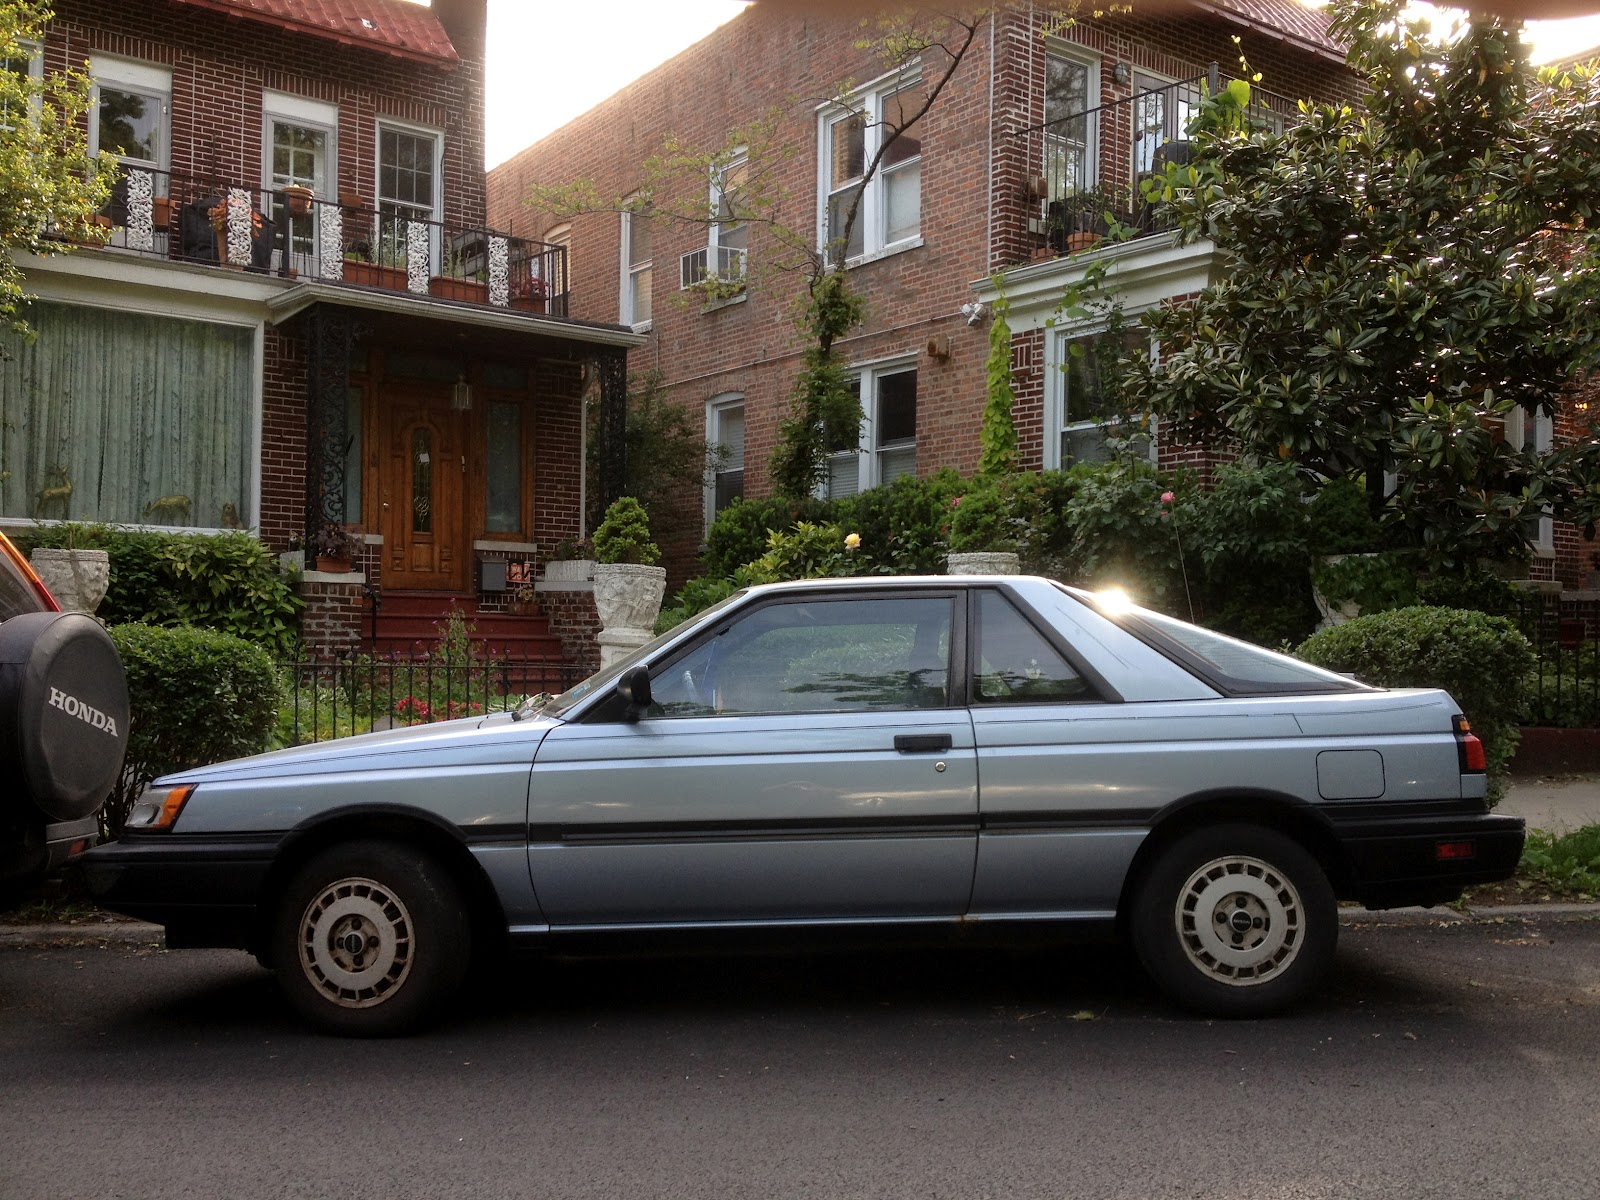 Cscb Home 1986 Nissan Sentra Two Door Sport Coupe